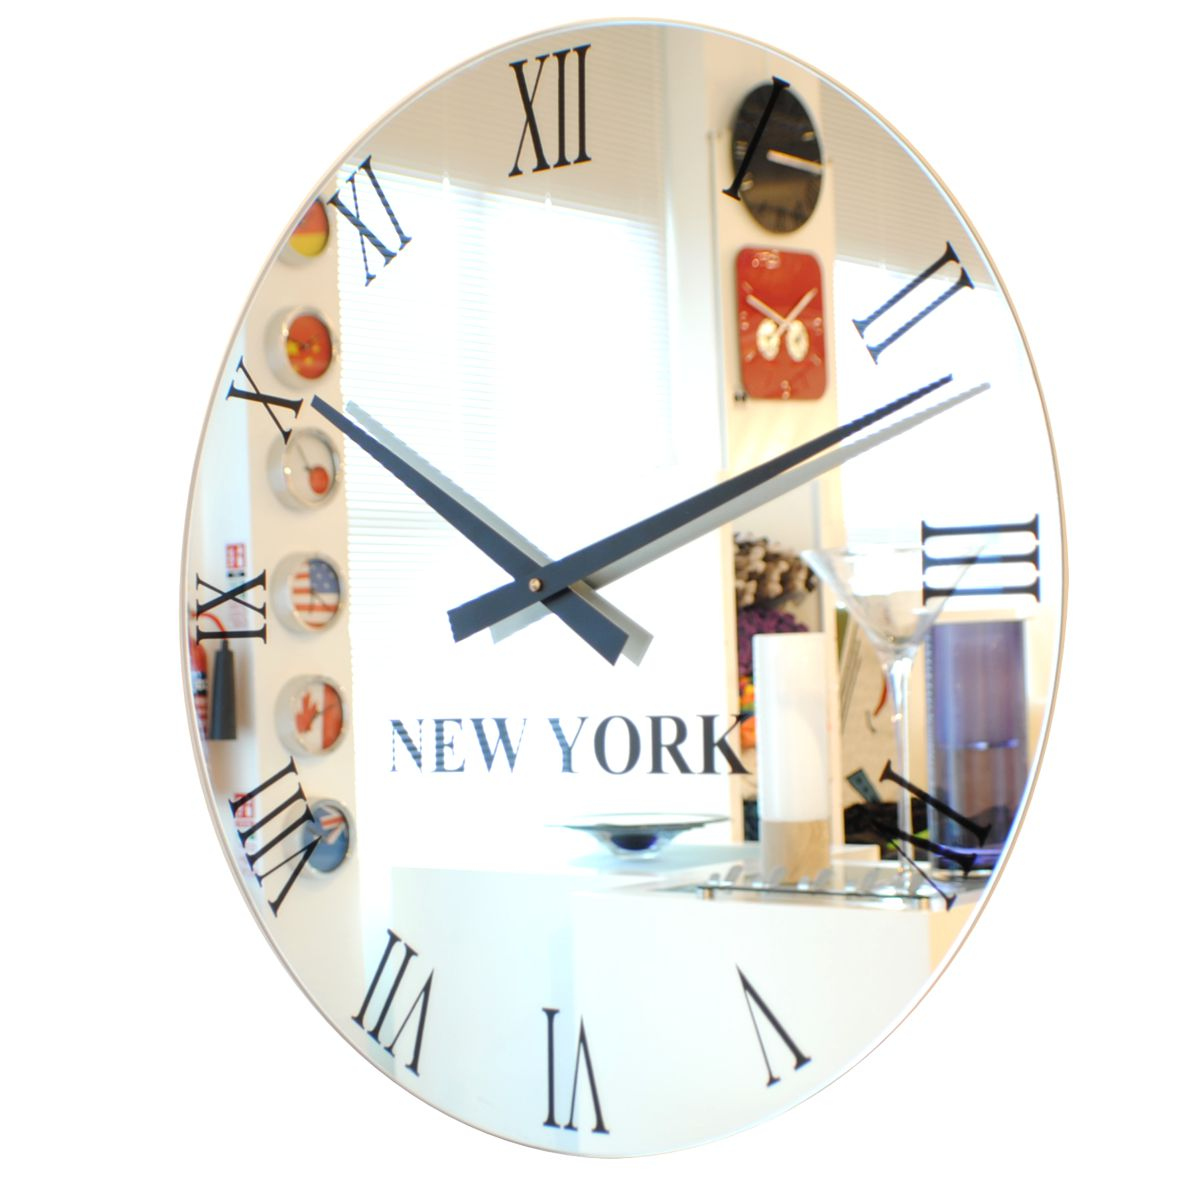 Roco verre roman mirror world timezone clock all images and content copyright of roco verre 2018 site map gumiabroncs Gallery